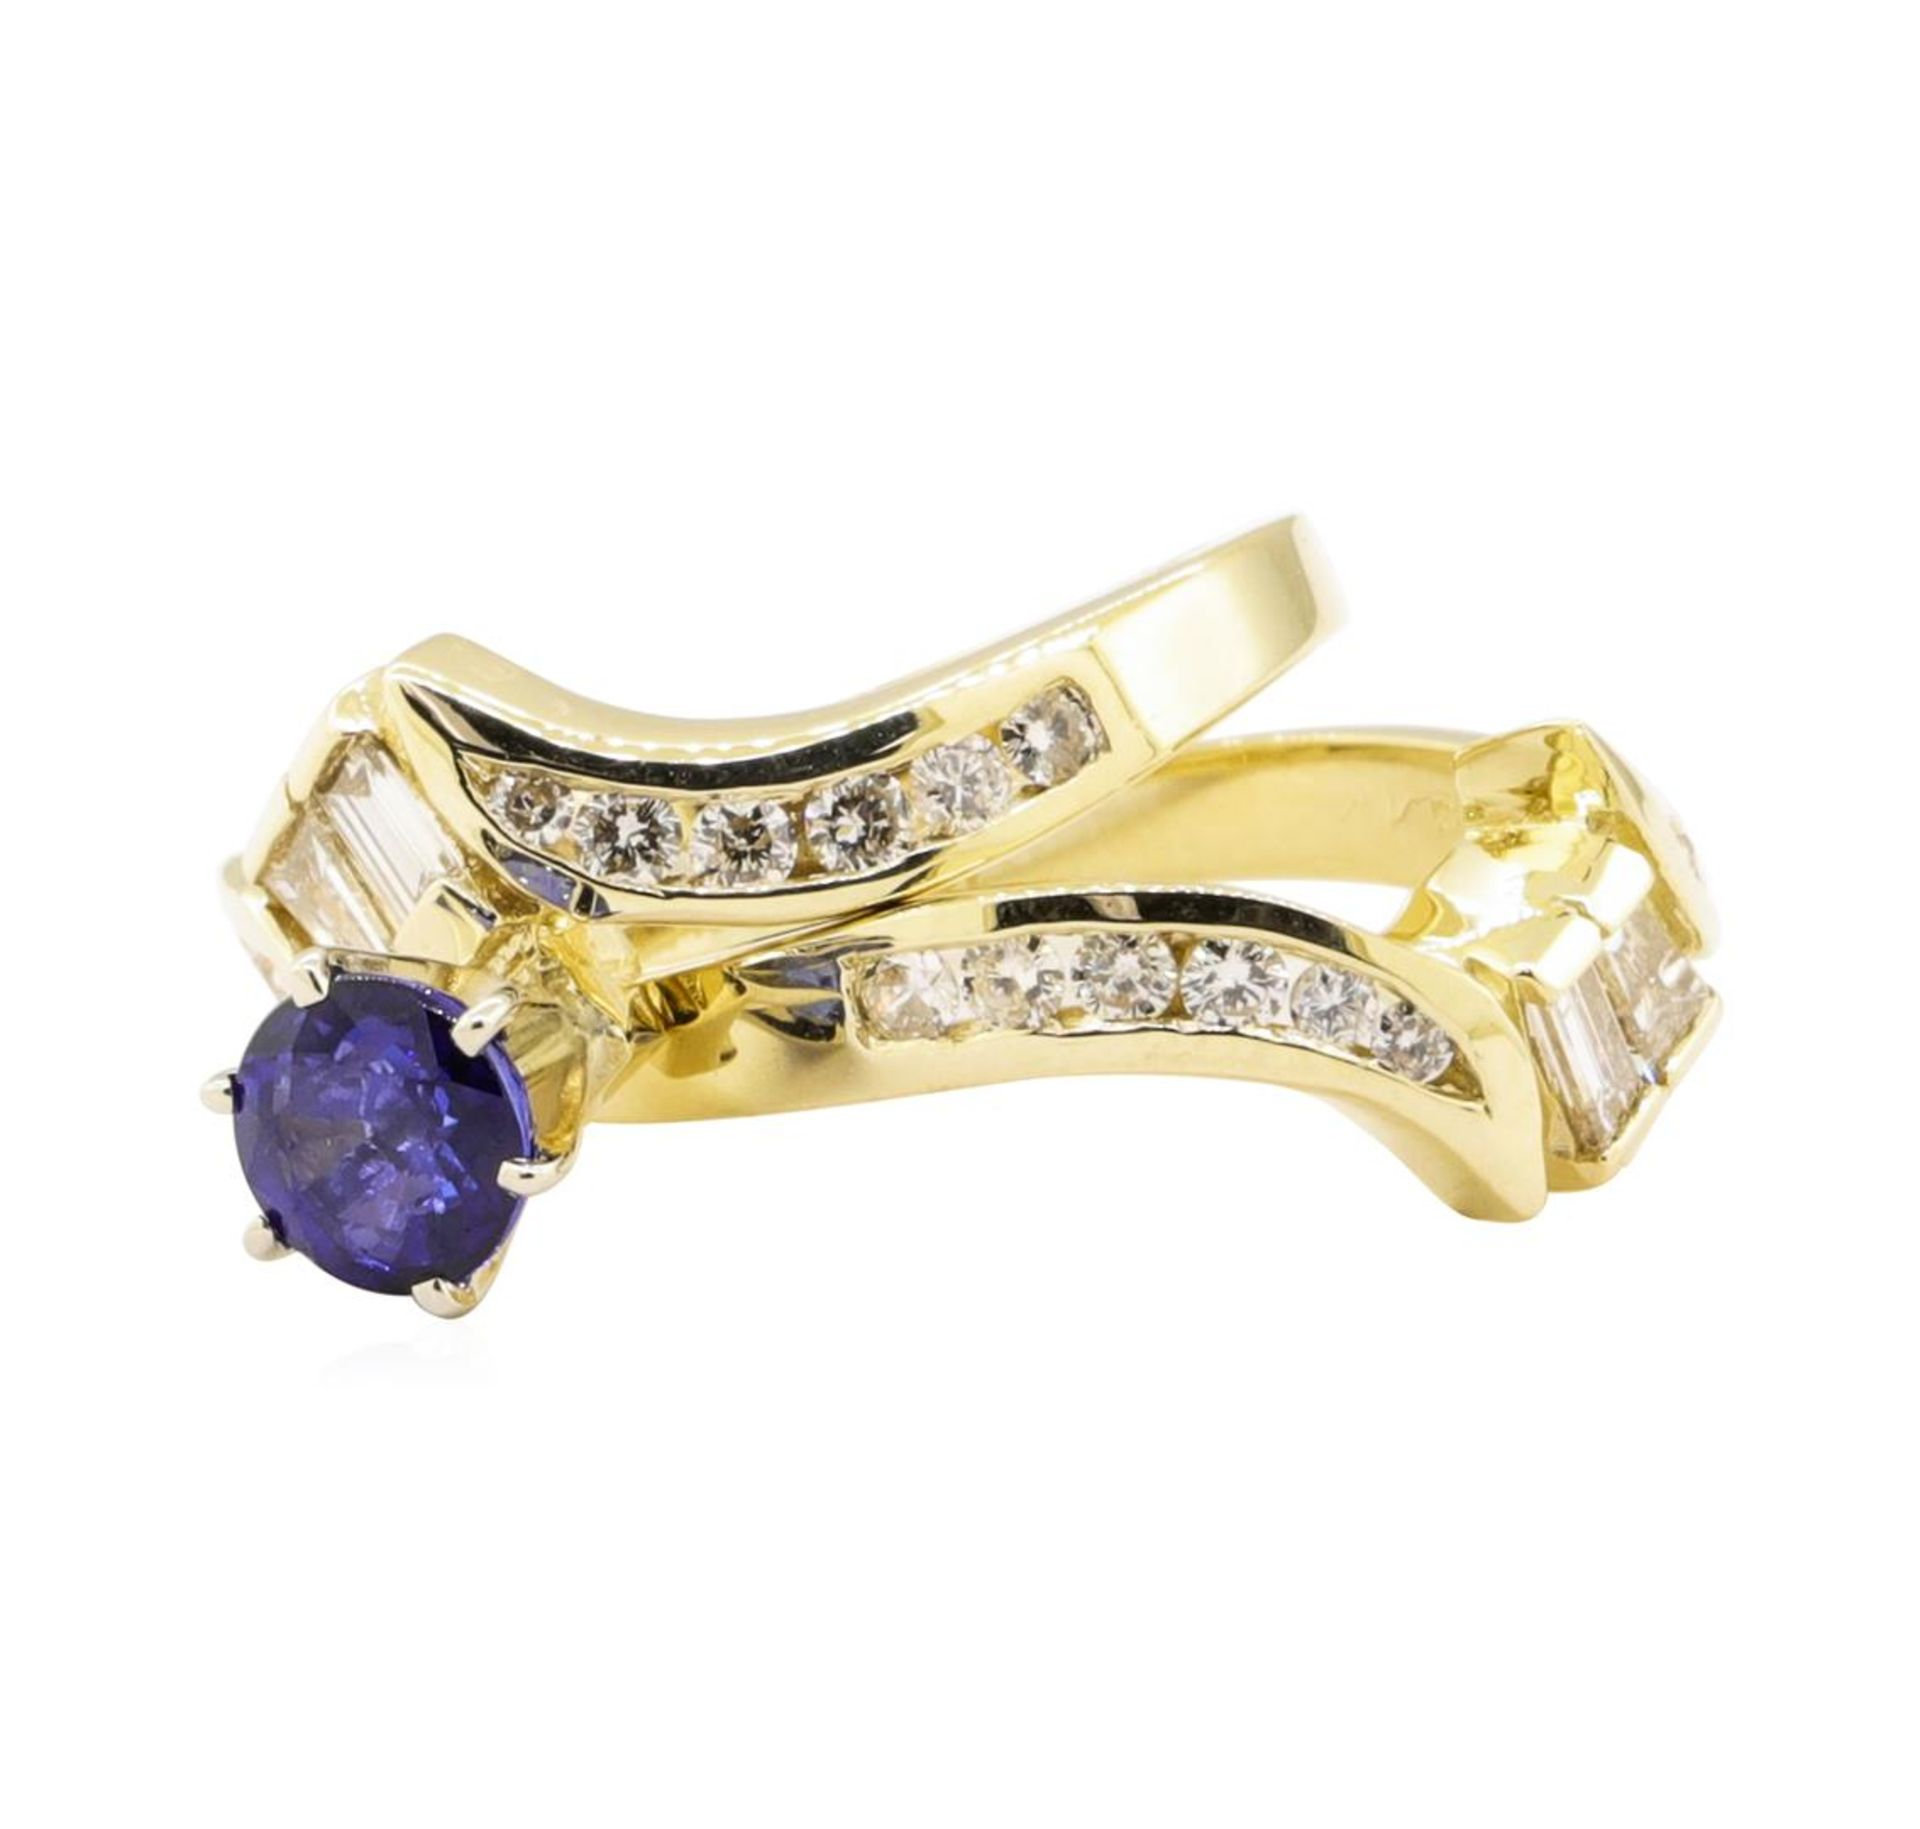 1.61 ctw Blue Sapphire And Diamond Ring And Band - 14KT Yellow Gold - Image 3 of 4